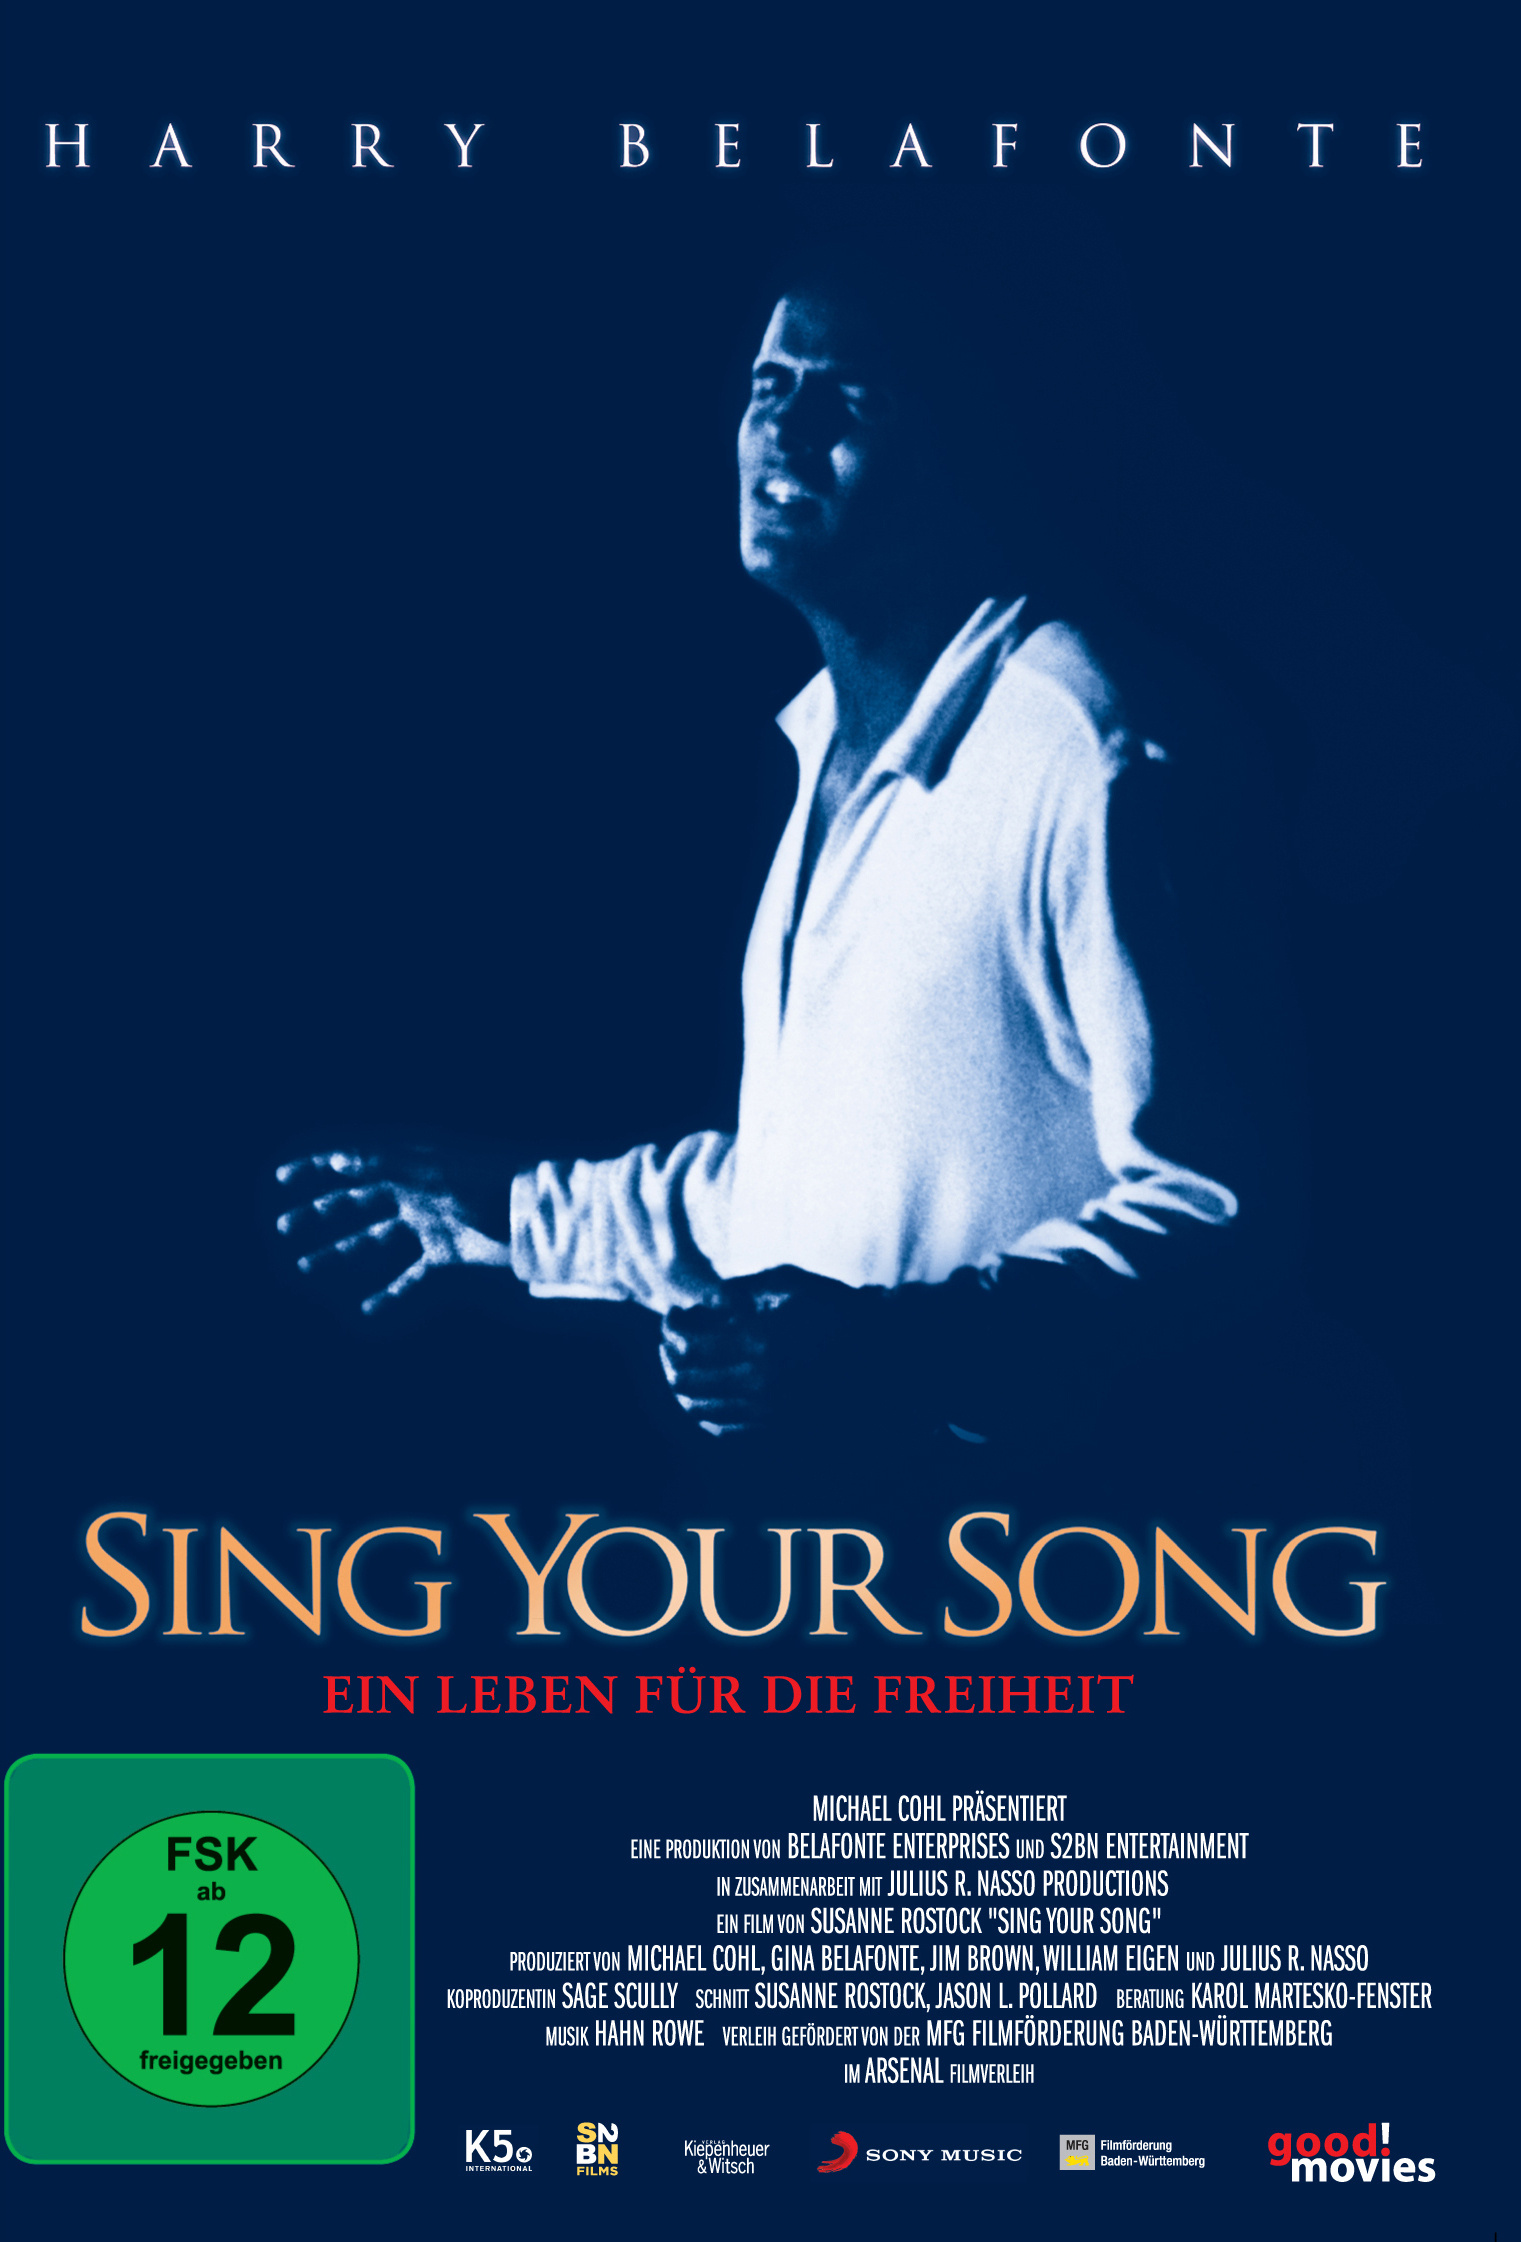 Image of Harry Belafonte: Sing Your Song